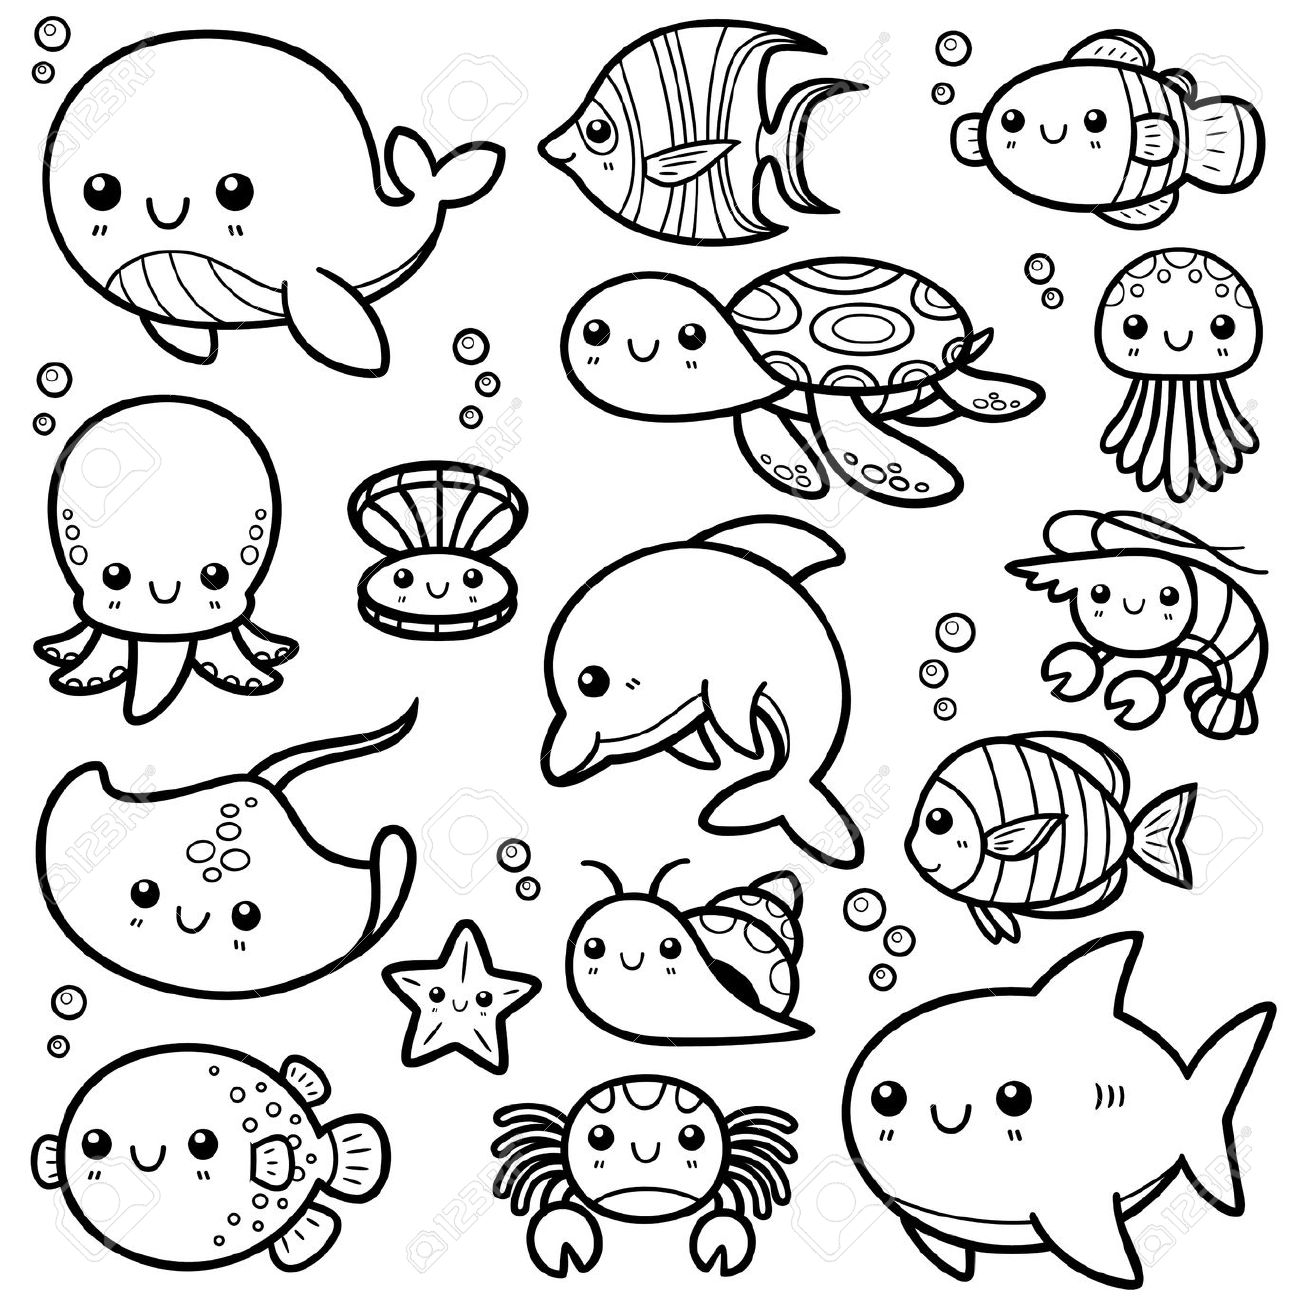 sea life animals coloring pages best ocean animals coloring pages for kids best coloring animals sea coloring life pages